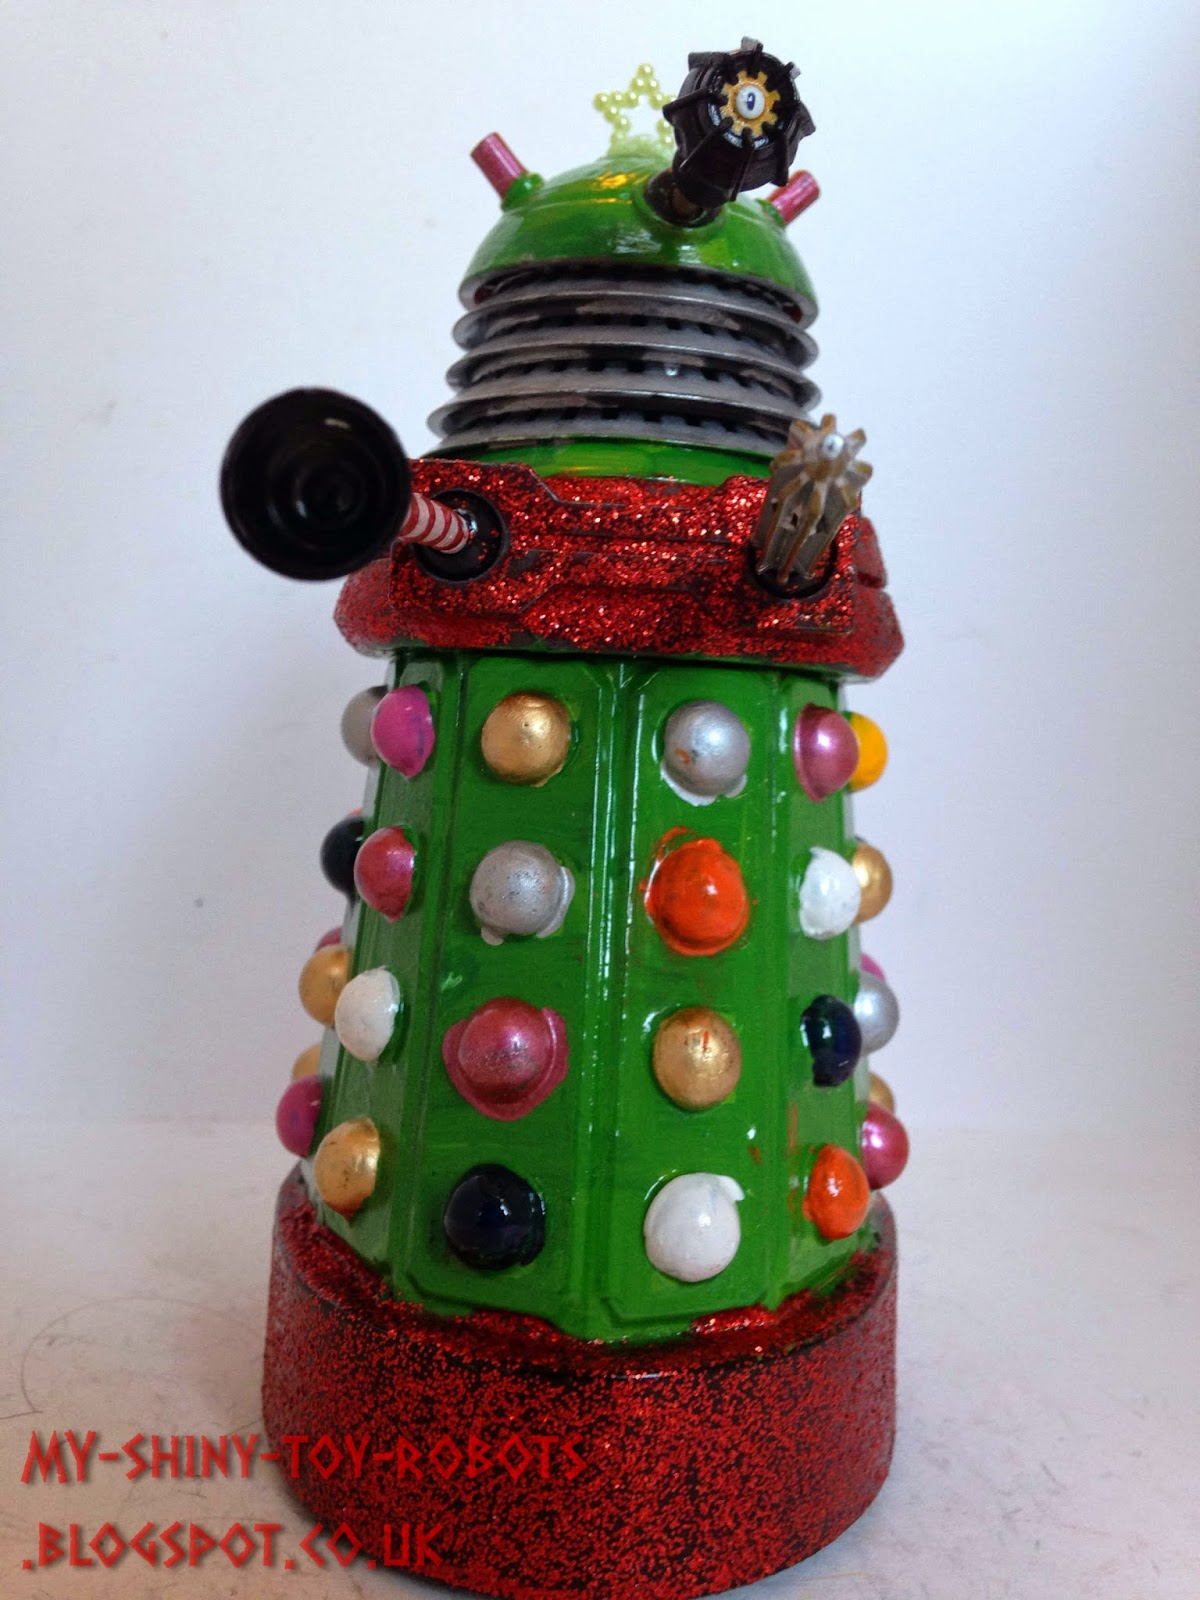 The Christmas tree Dalek